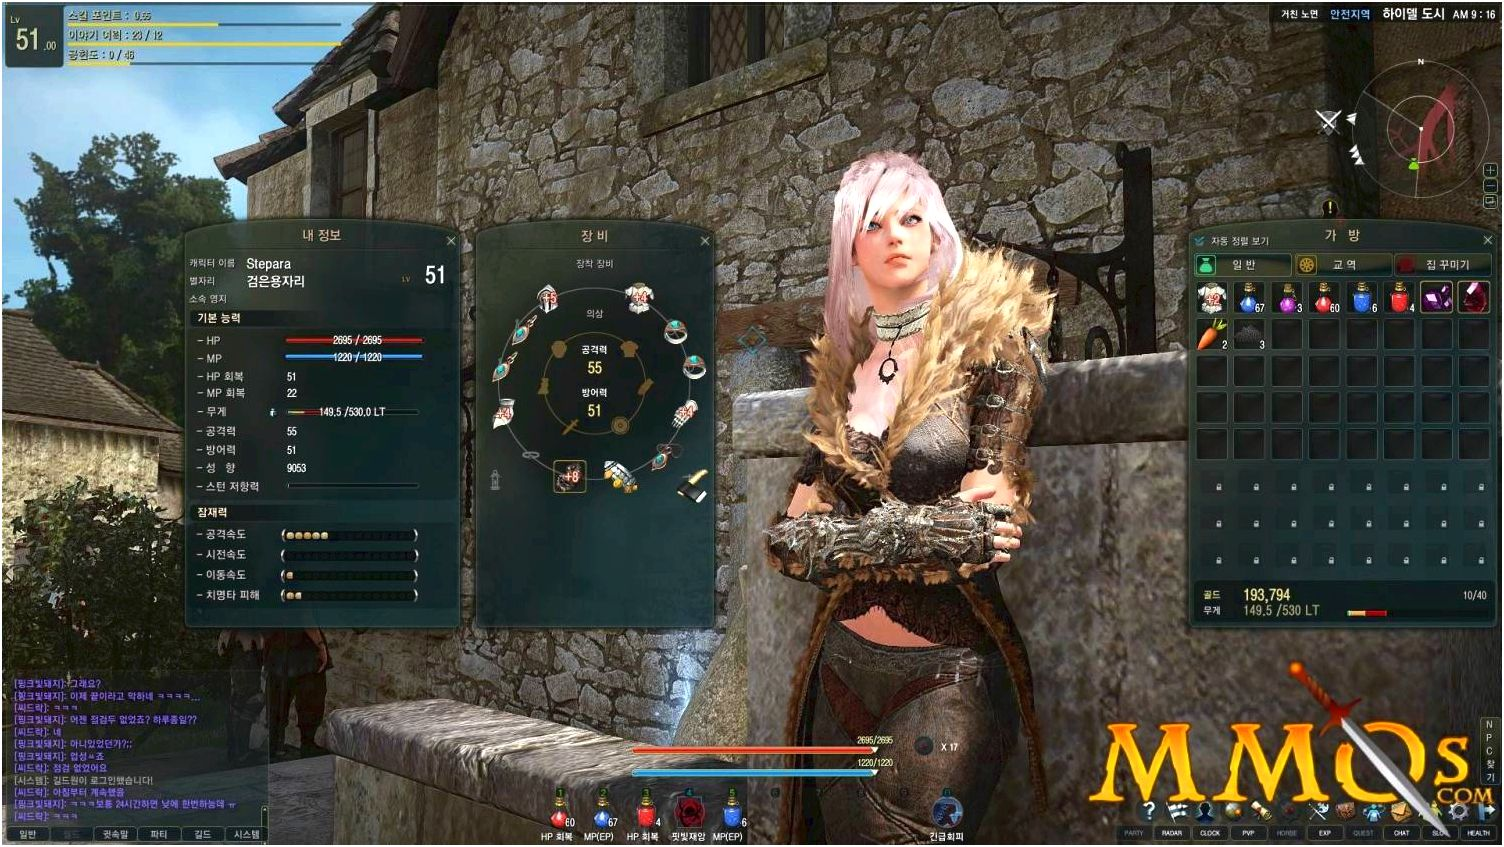 Black desert online - mmog.com Seamless Movement Throughtout